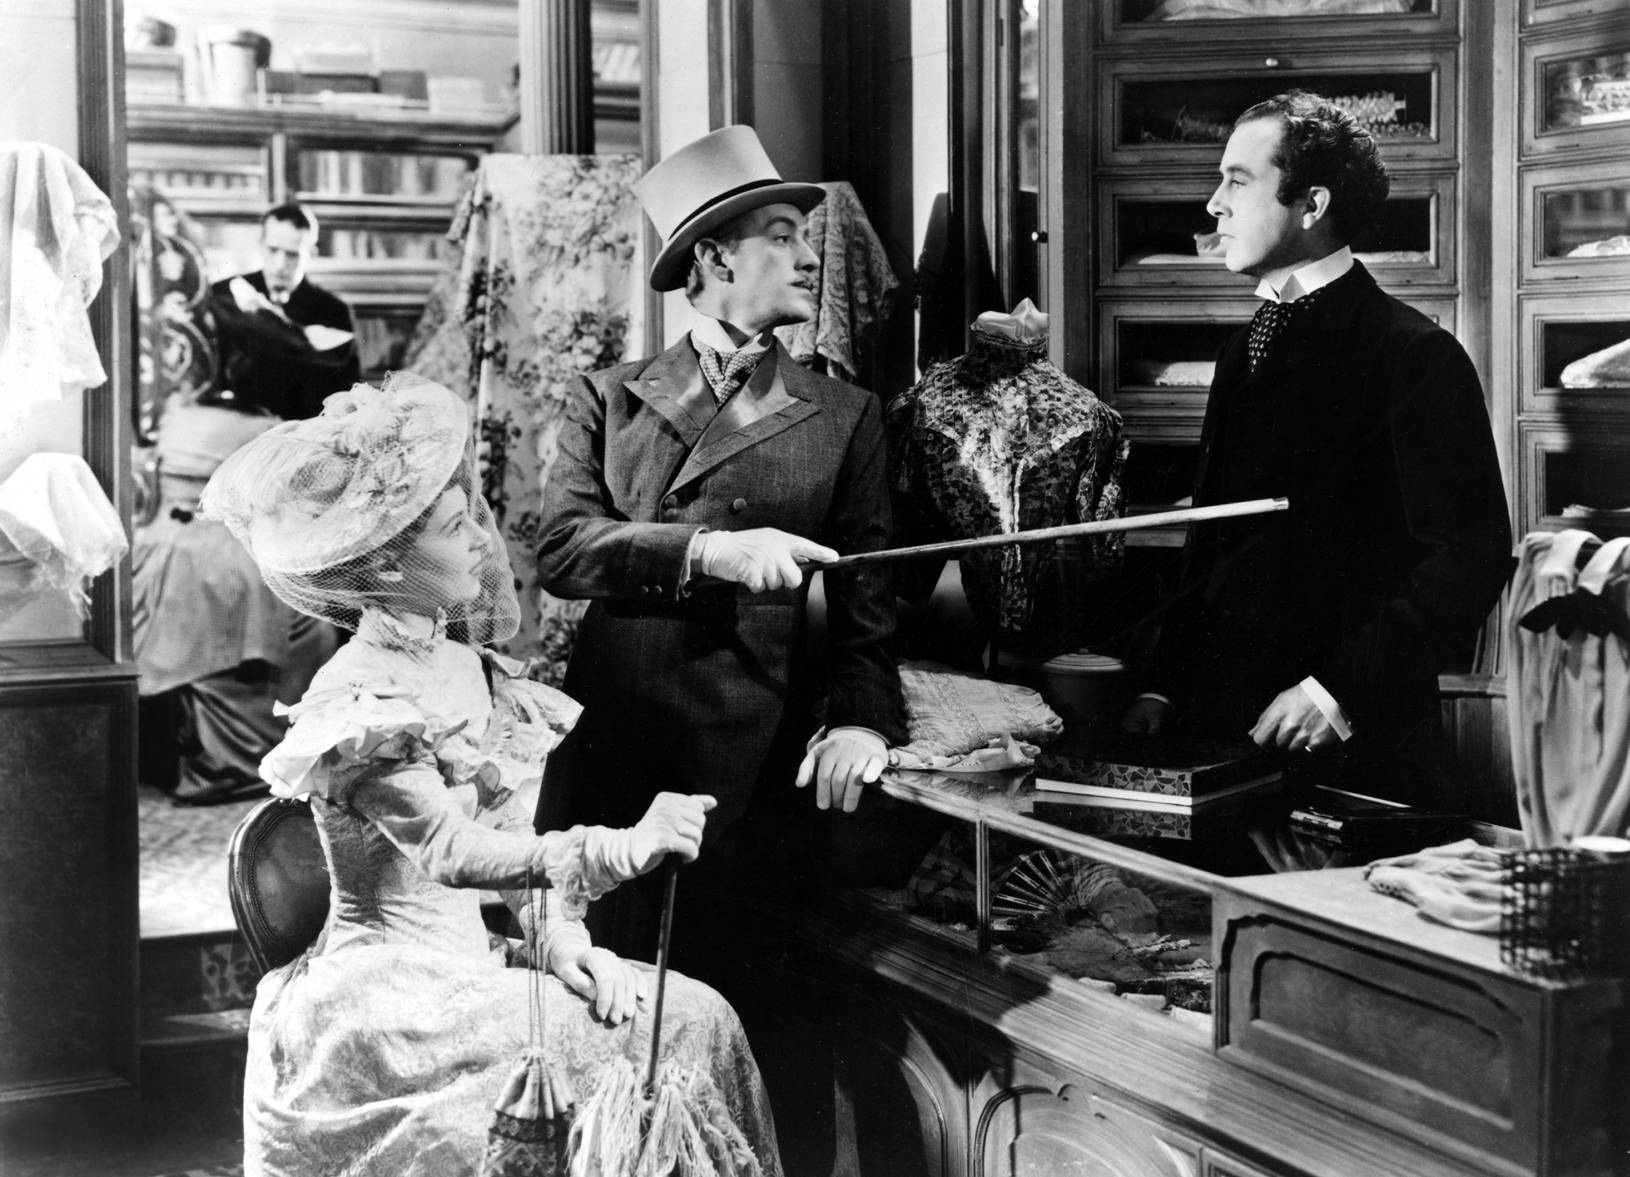 Andrea Hall,Mackenzie Aladjem born September 11, 2001 (age 17) XXX pics & movies Llyr Ifans (born 1968),Kanya Rattanapetch